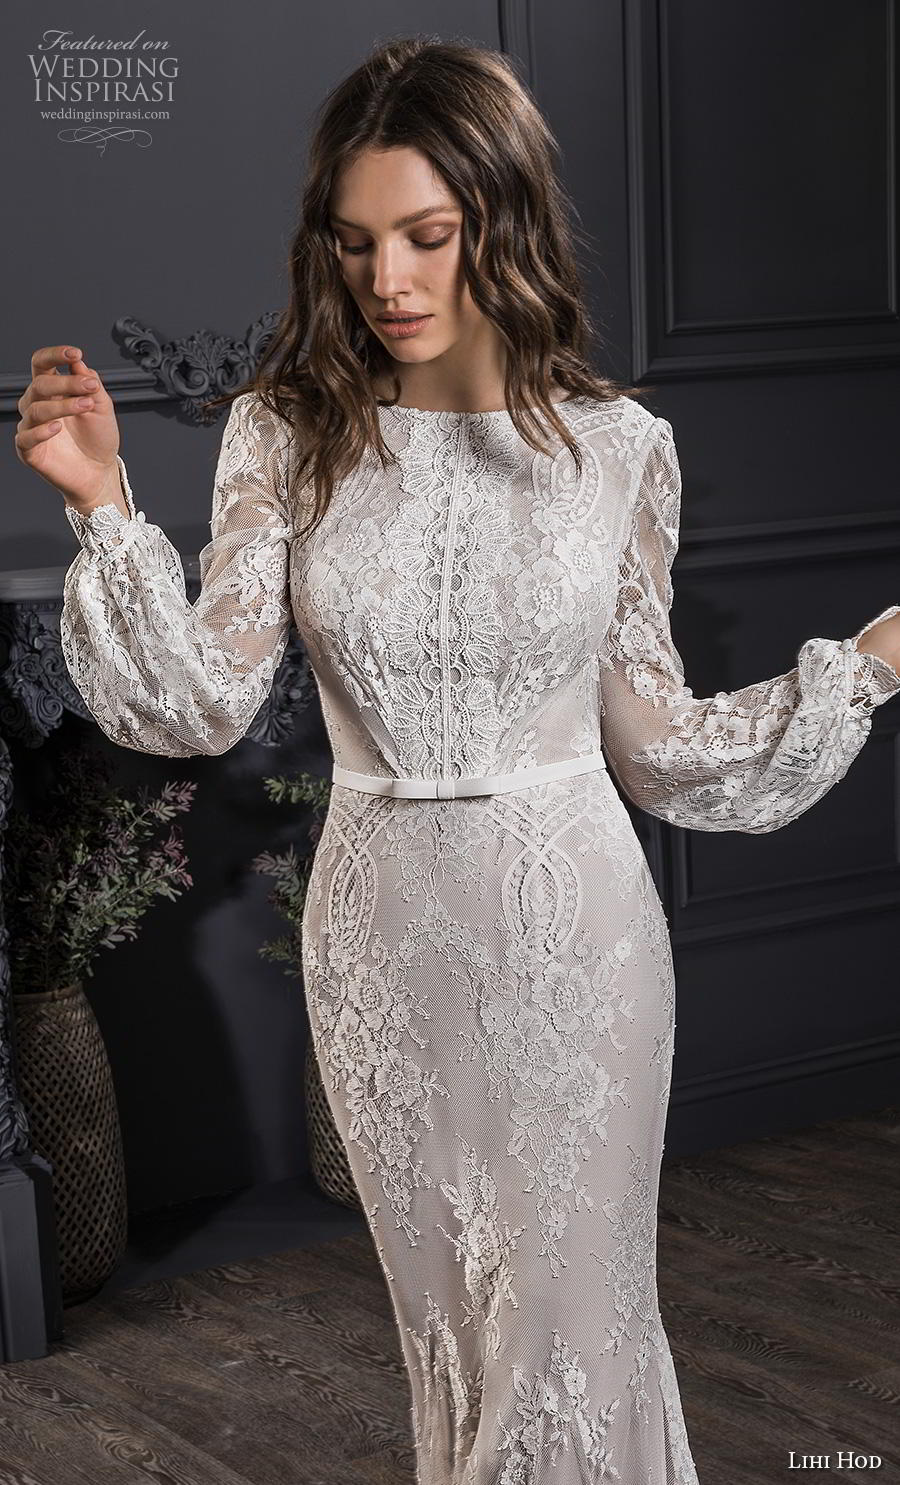 lihi hod spring 2020 bridal long bishop sleeves bateau neckline full embellishment bohemian sheath wedding dress backless low v back short train (3) zv